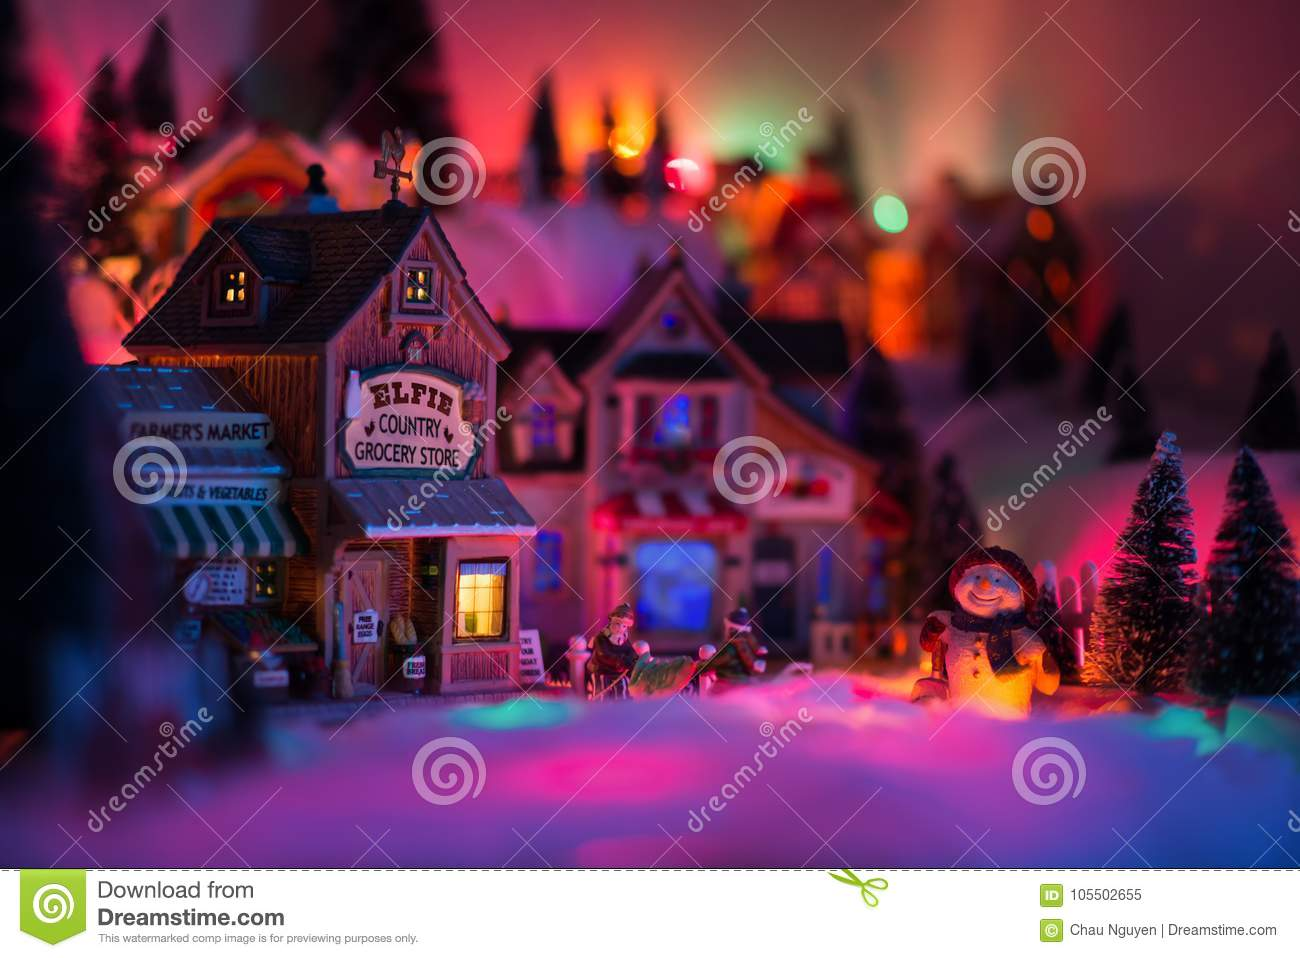 Holidays concept of miniature scenery in Christmas times